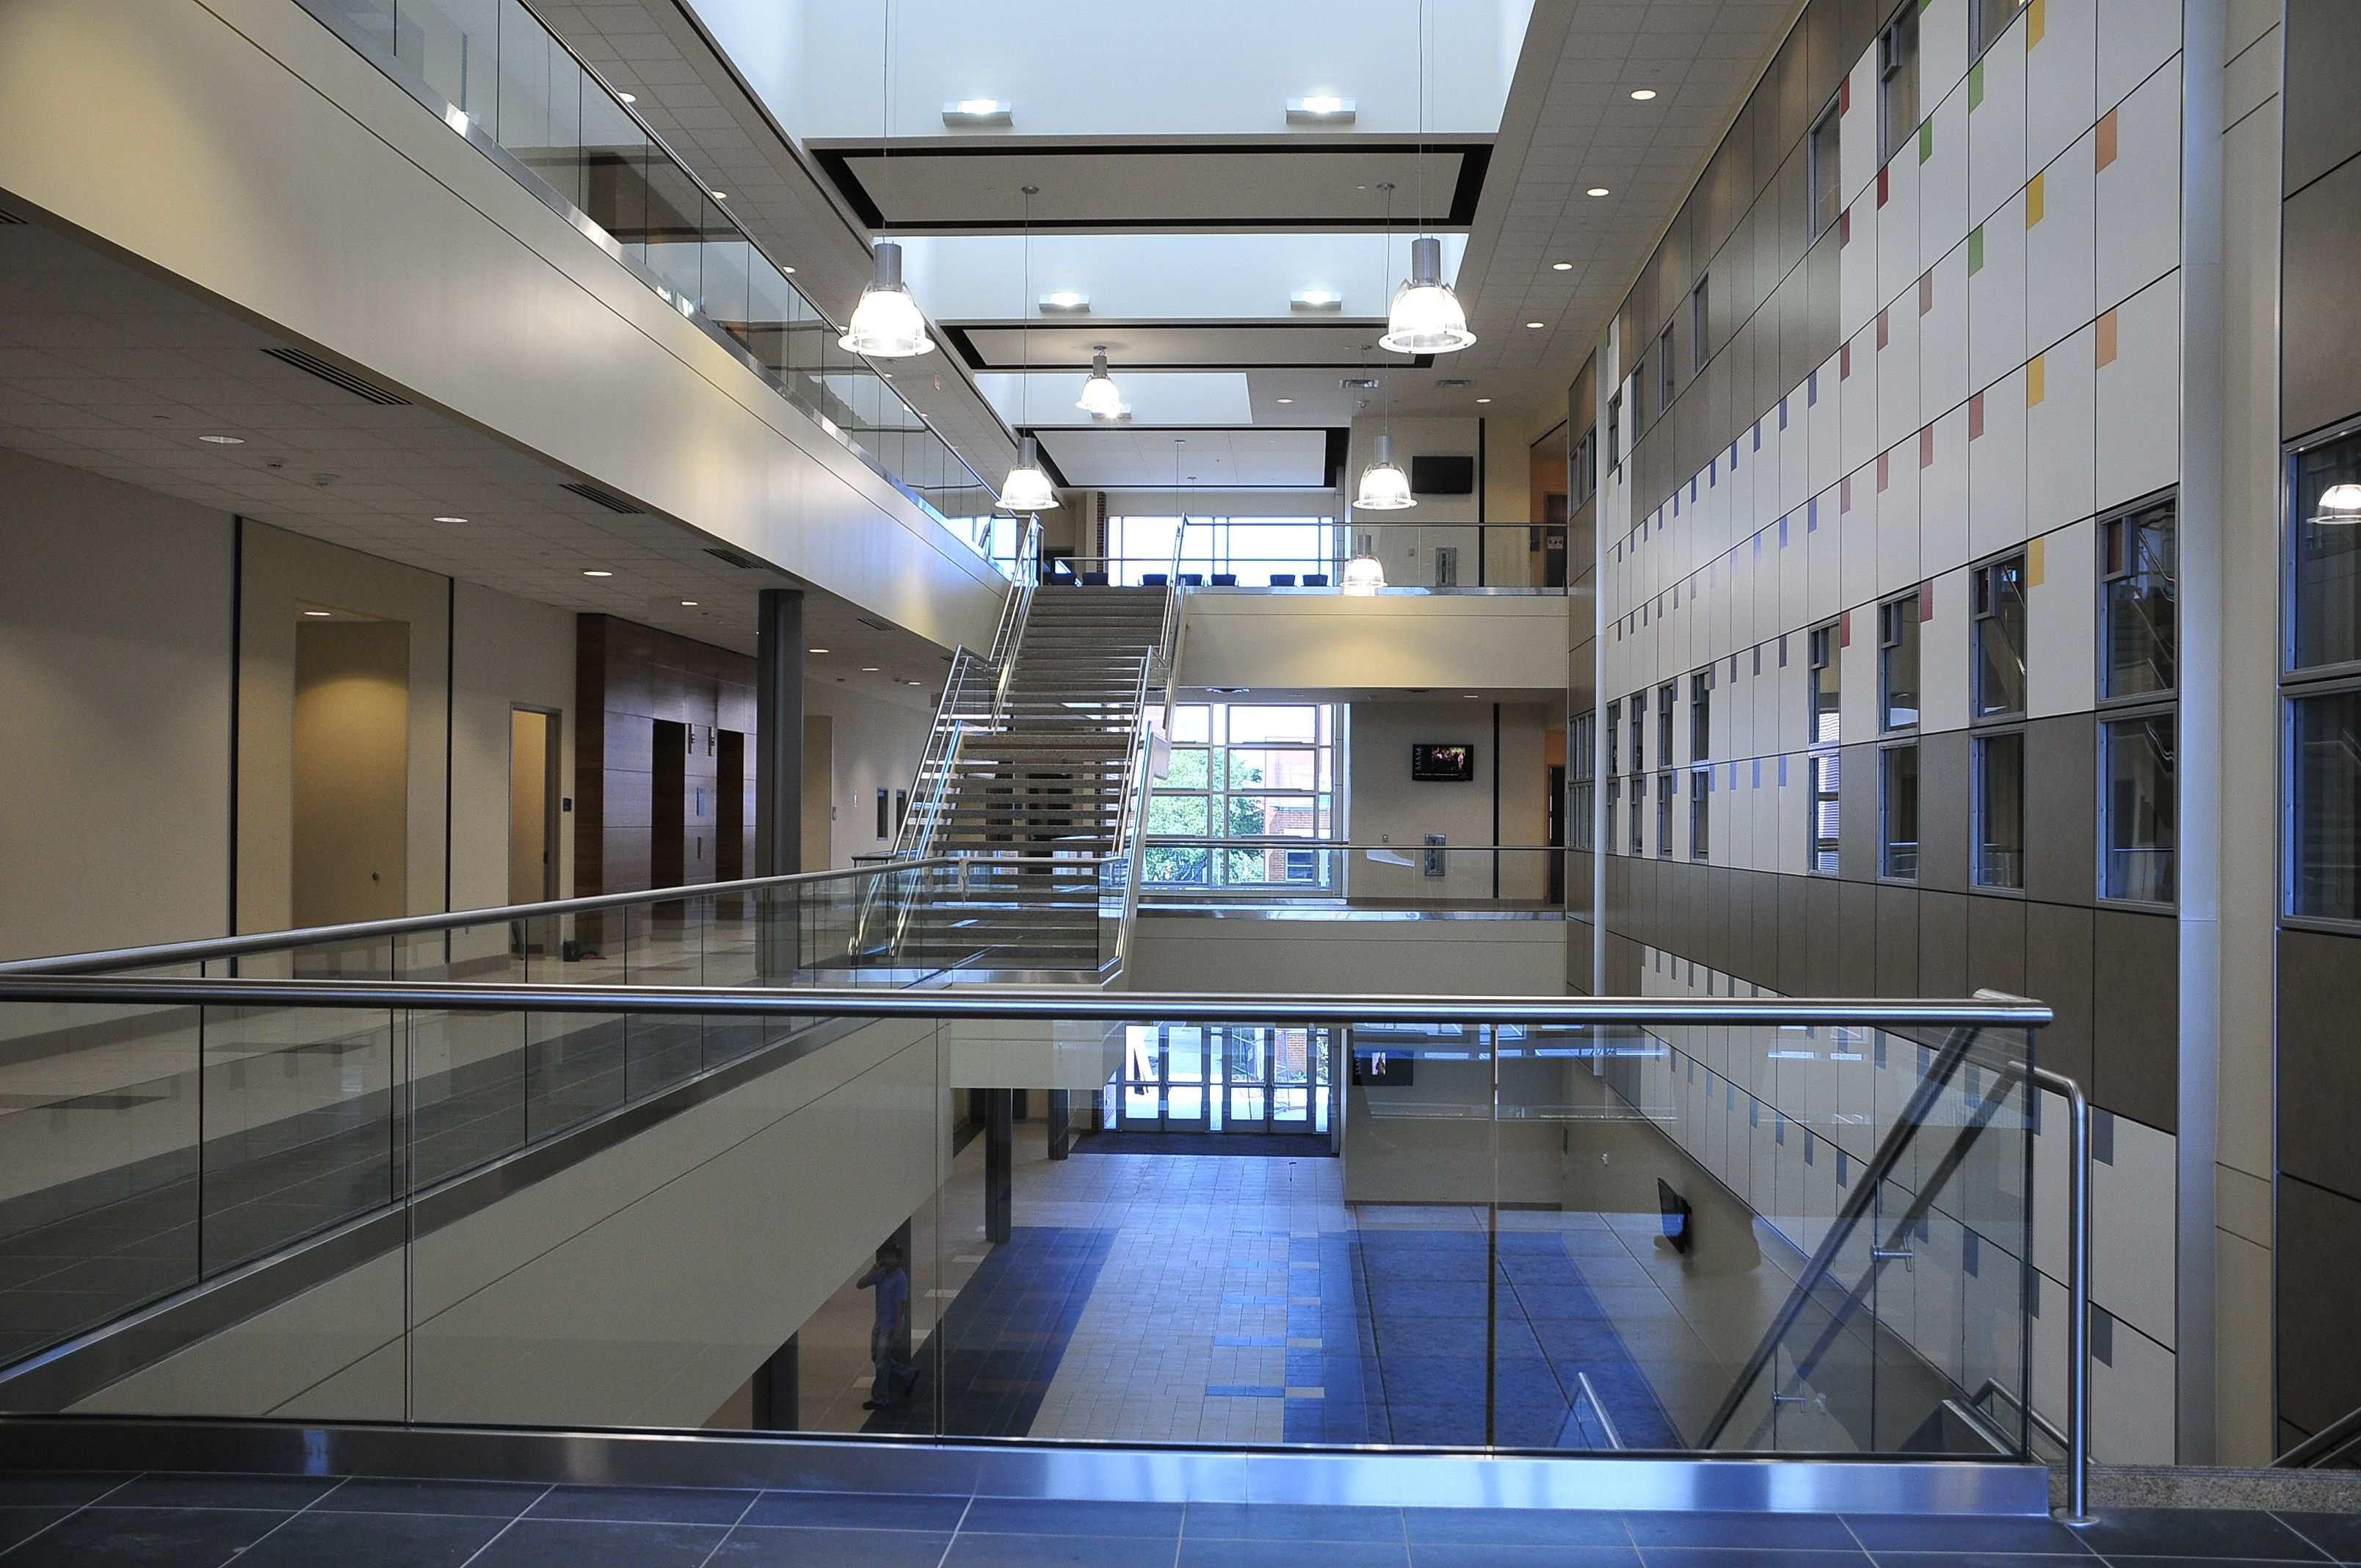 Central campus allied health and natural sciences building